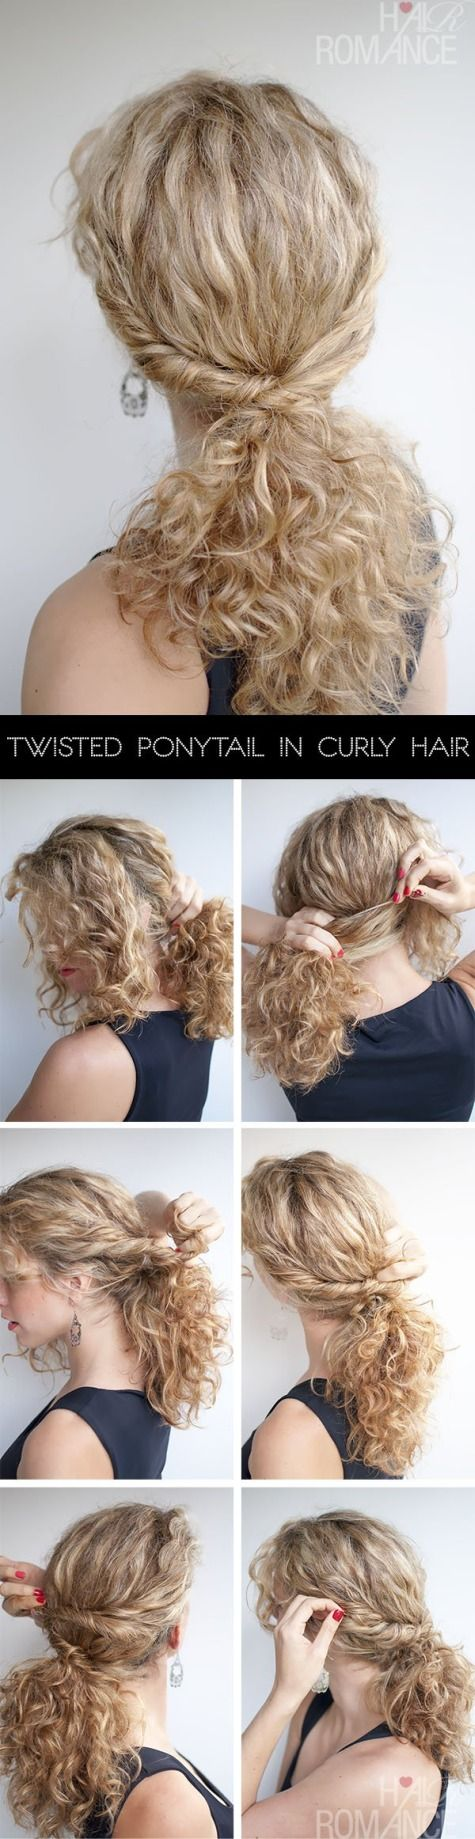 Twisted Ponytail: 9 Easy Hairstyle Tutorials For Every Occasion